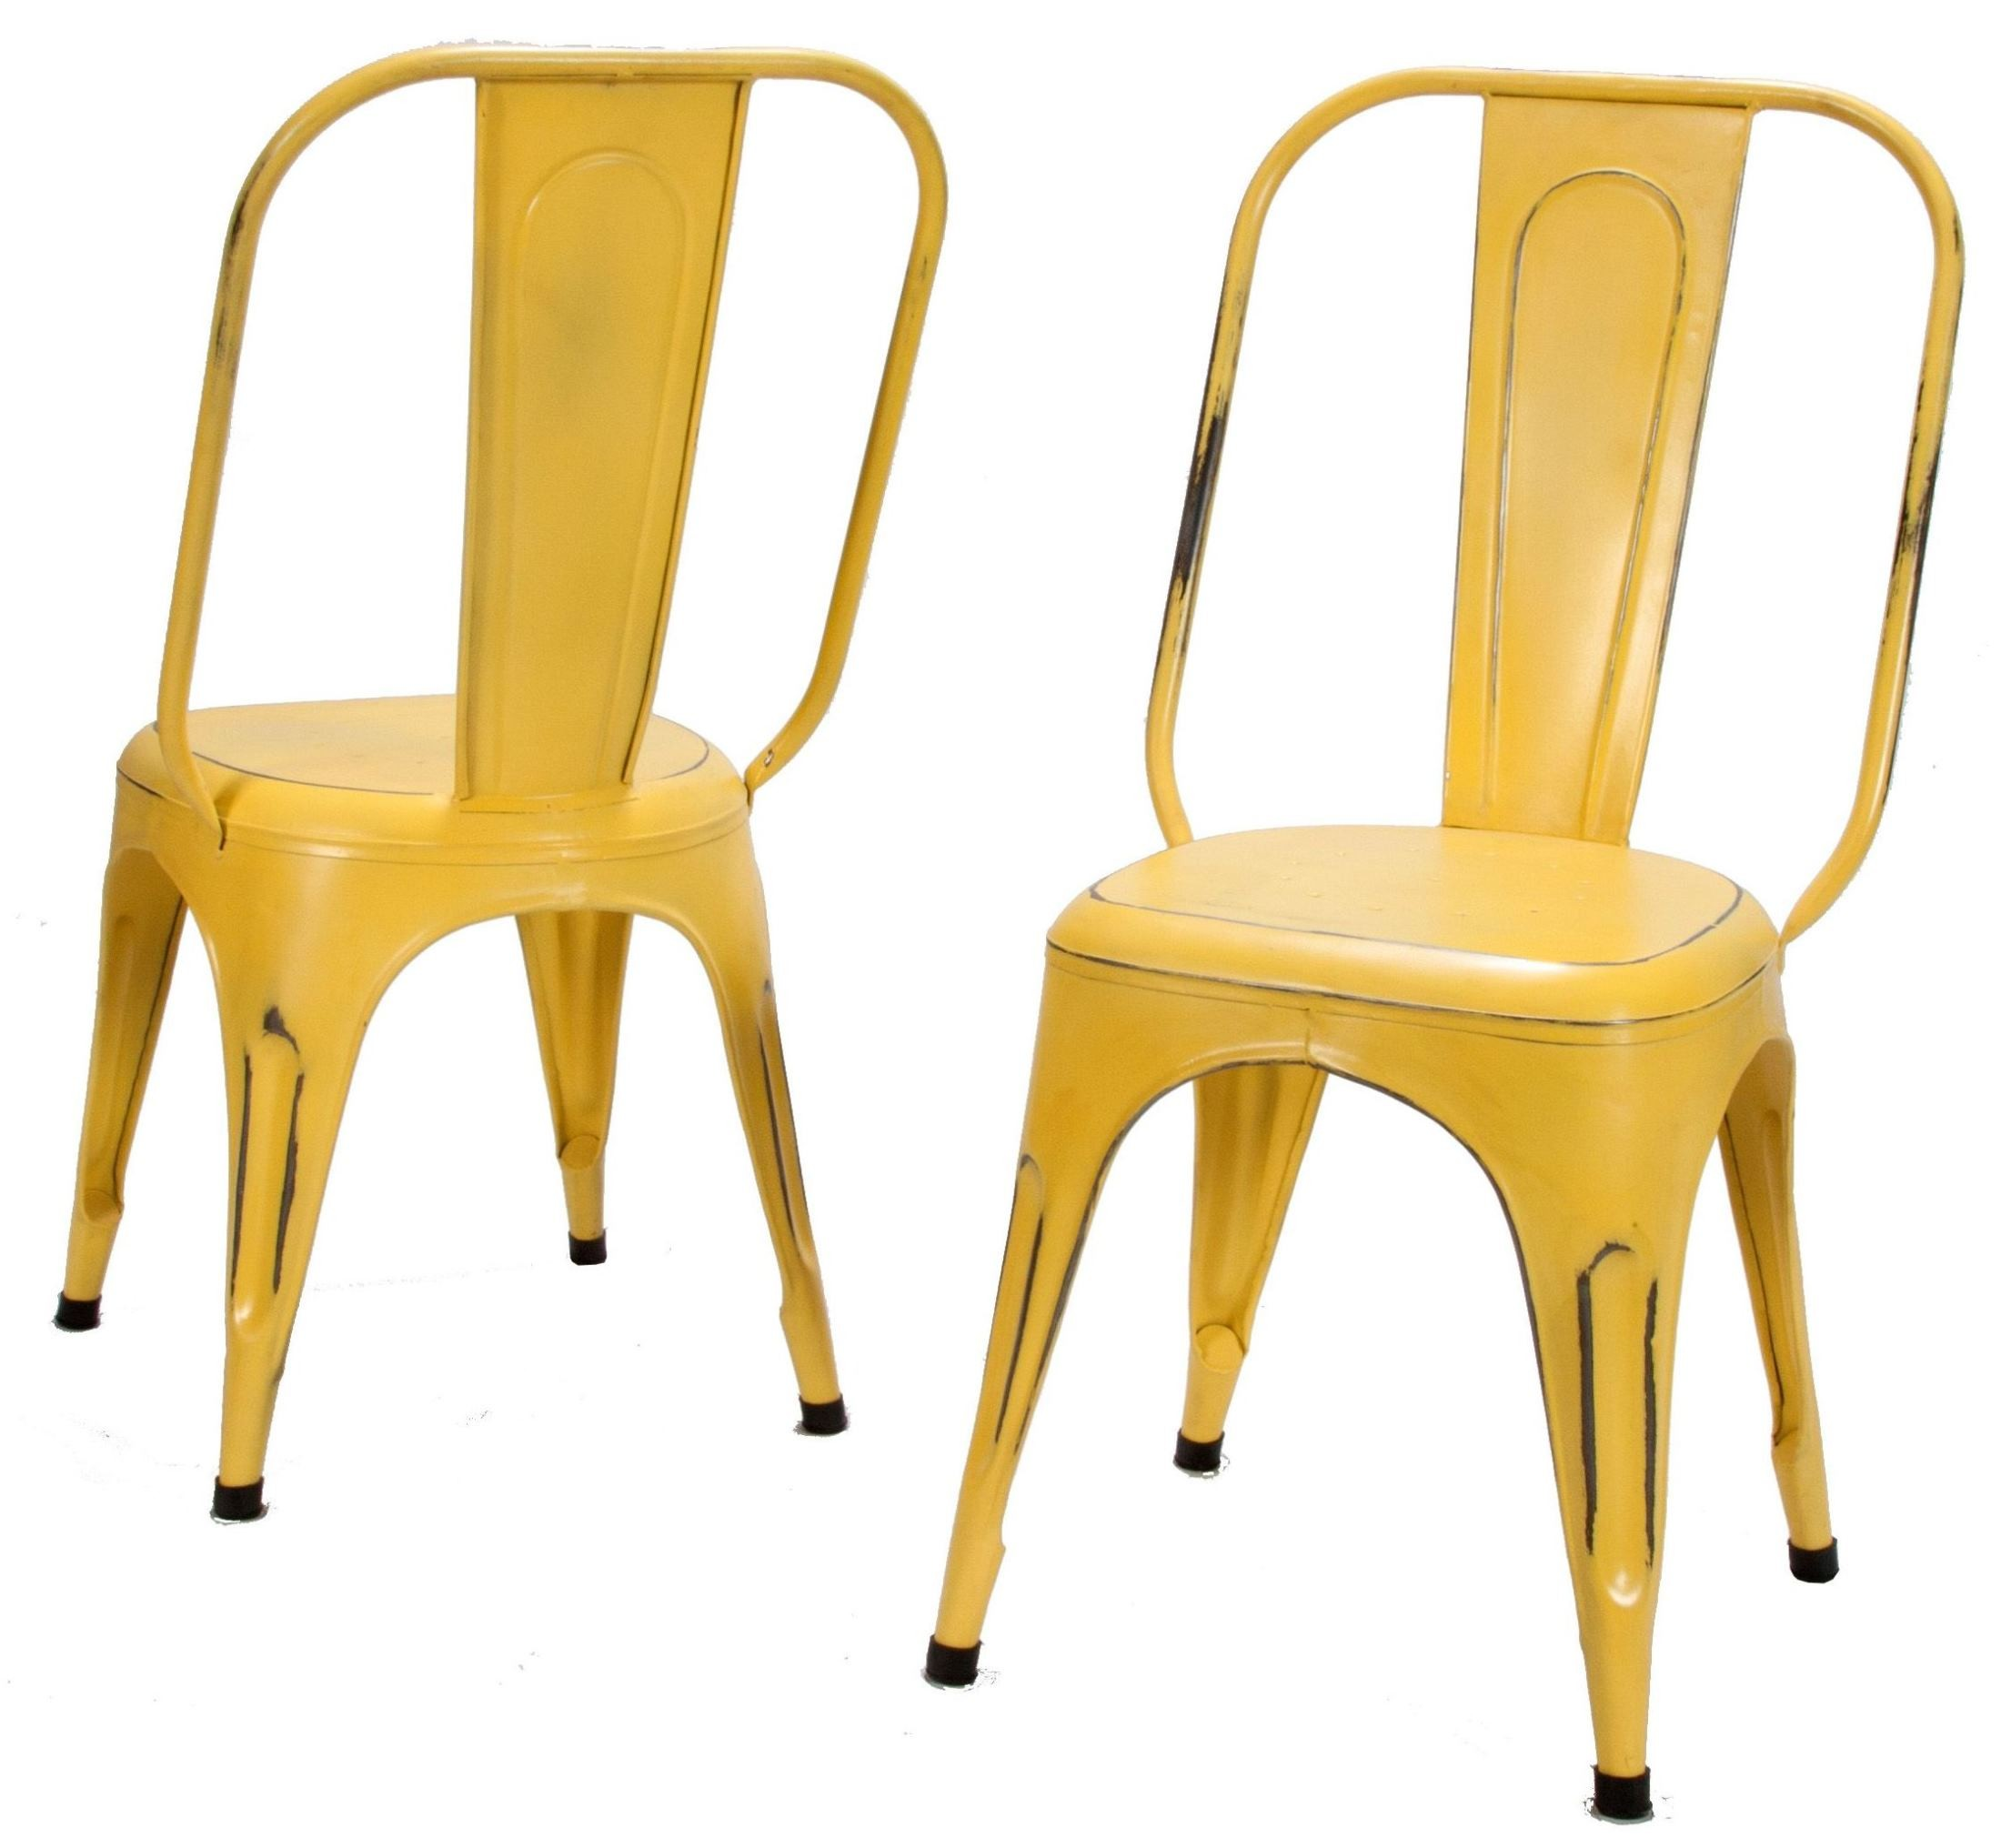 Yellow Metal Chairs Amara Yellow Metal Chair Set Of 4 From Homelegance